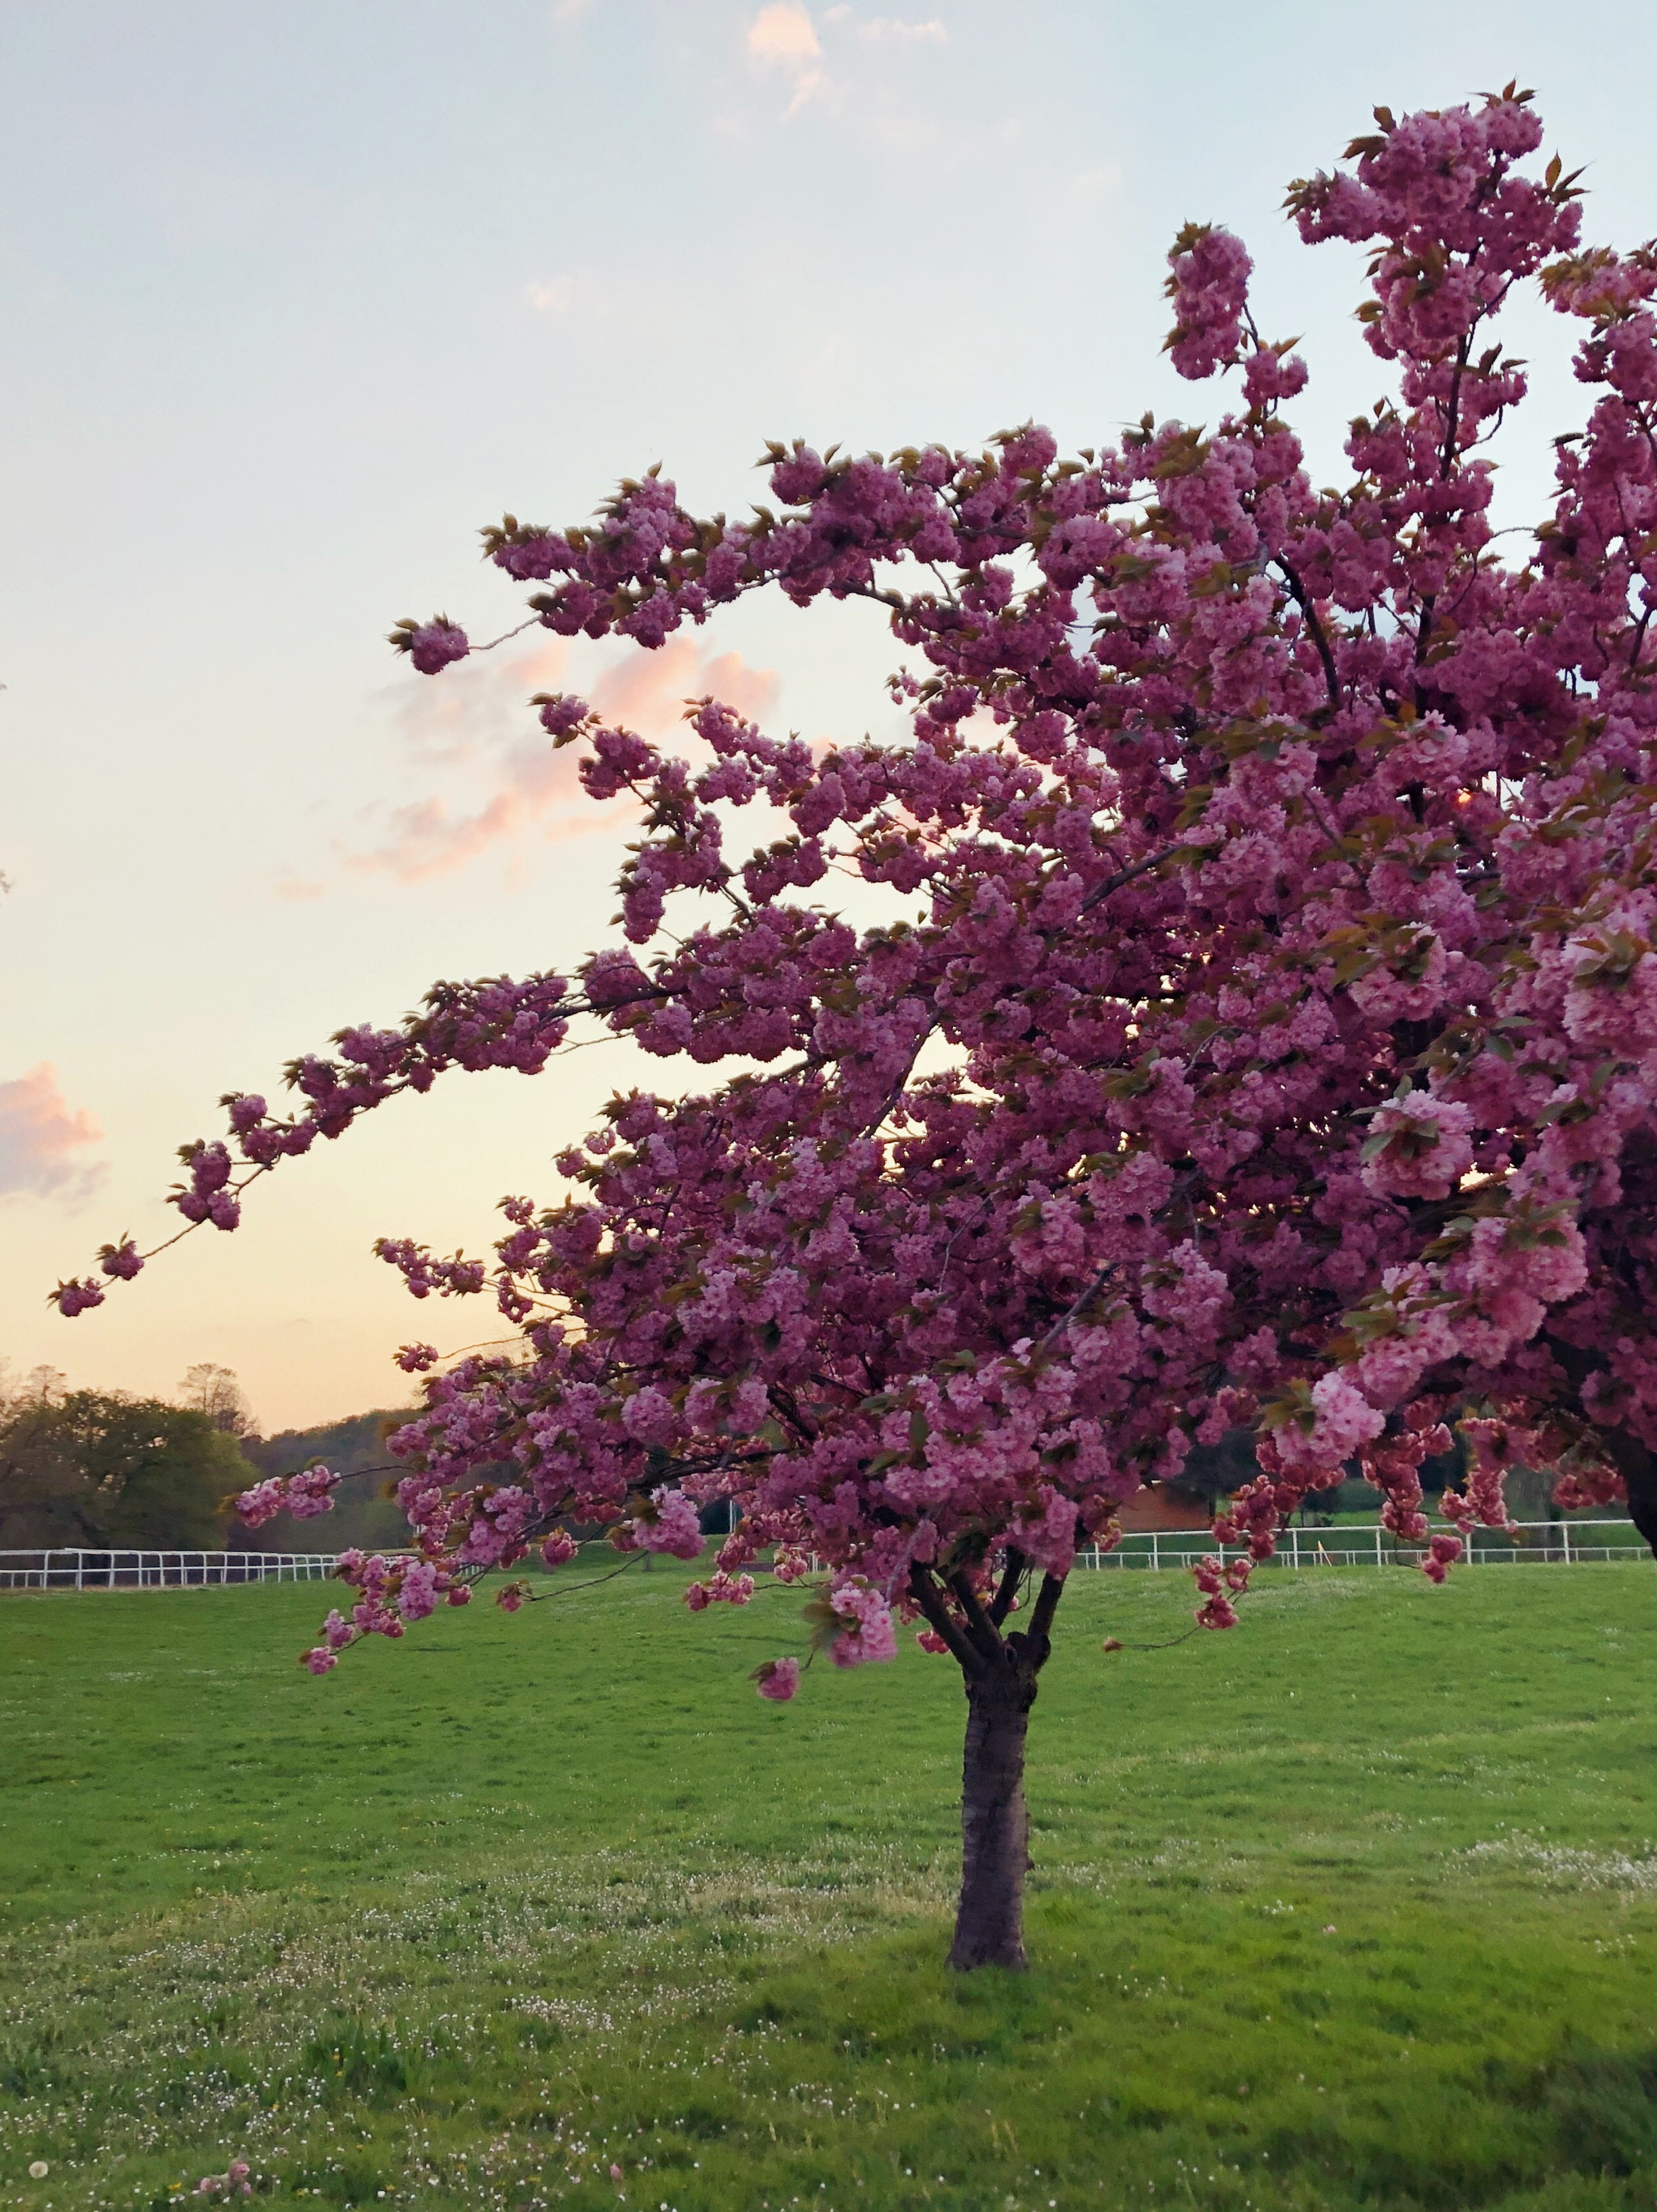 A pink cherry blossom tree in a field, by the lake-side sport playing fields